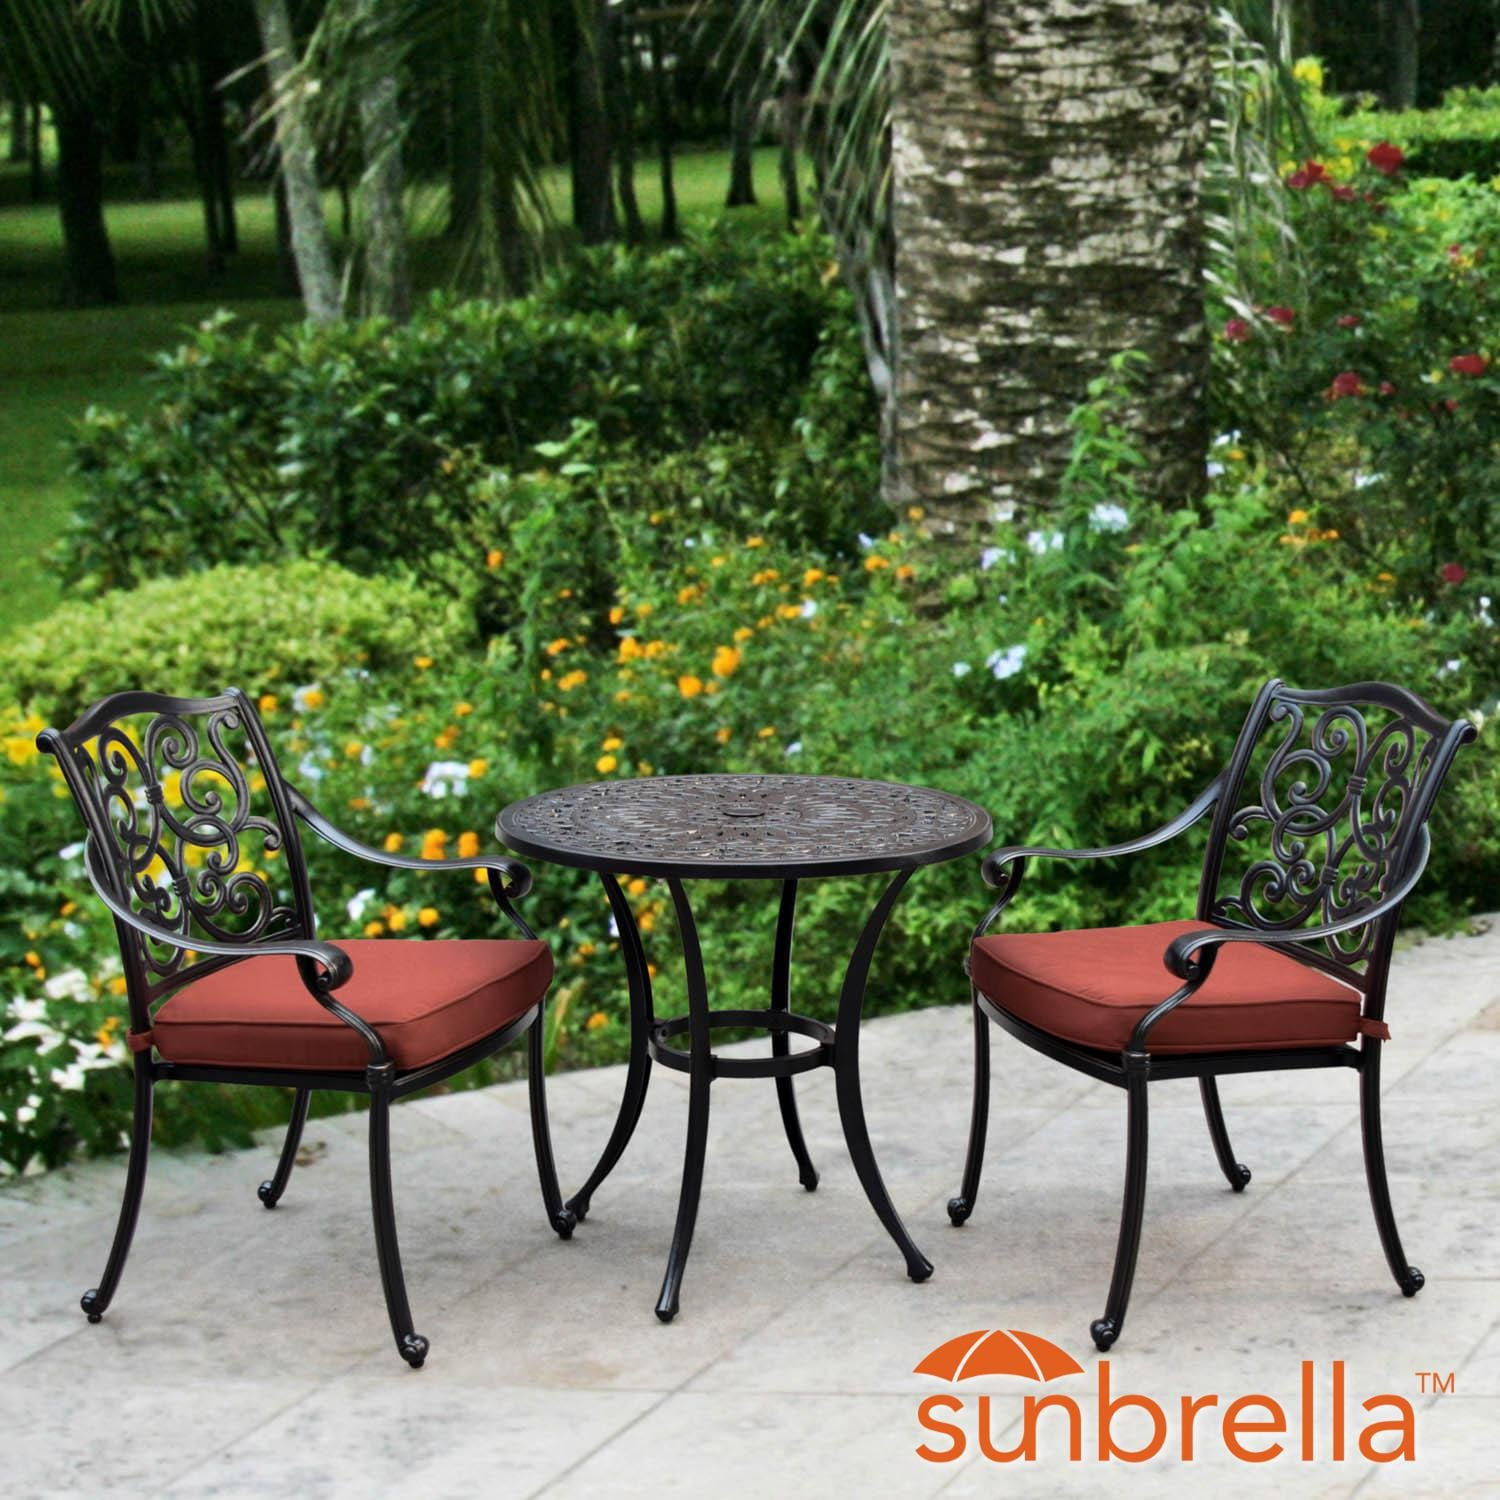 Villa Flora 3 Piece Cast Aluminum Patio Bistro Set W/ 30 Inch Round Table U0026  Sunbrella Canvas Henna Cushions By Lakeview Outdoor Designs   Lifestyle